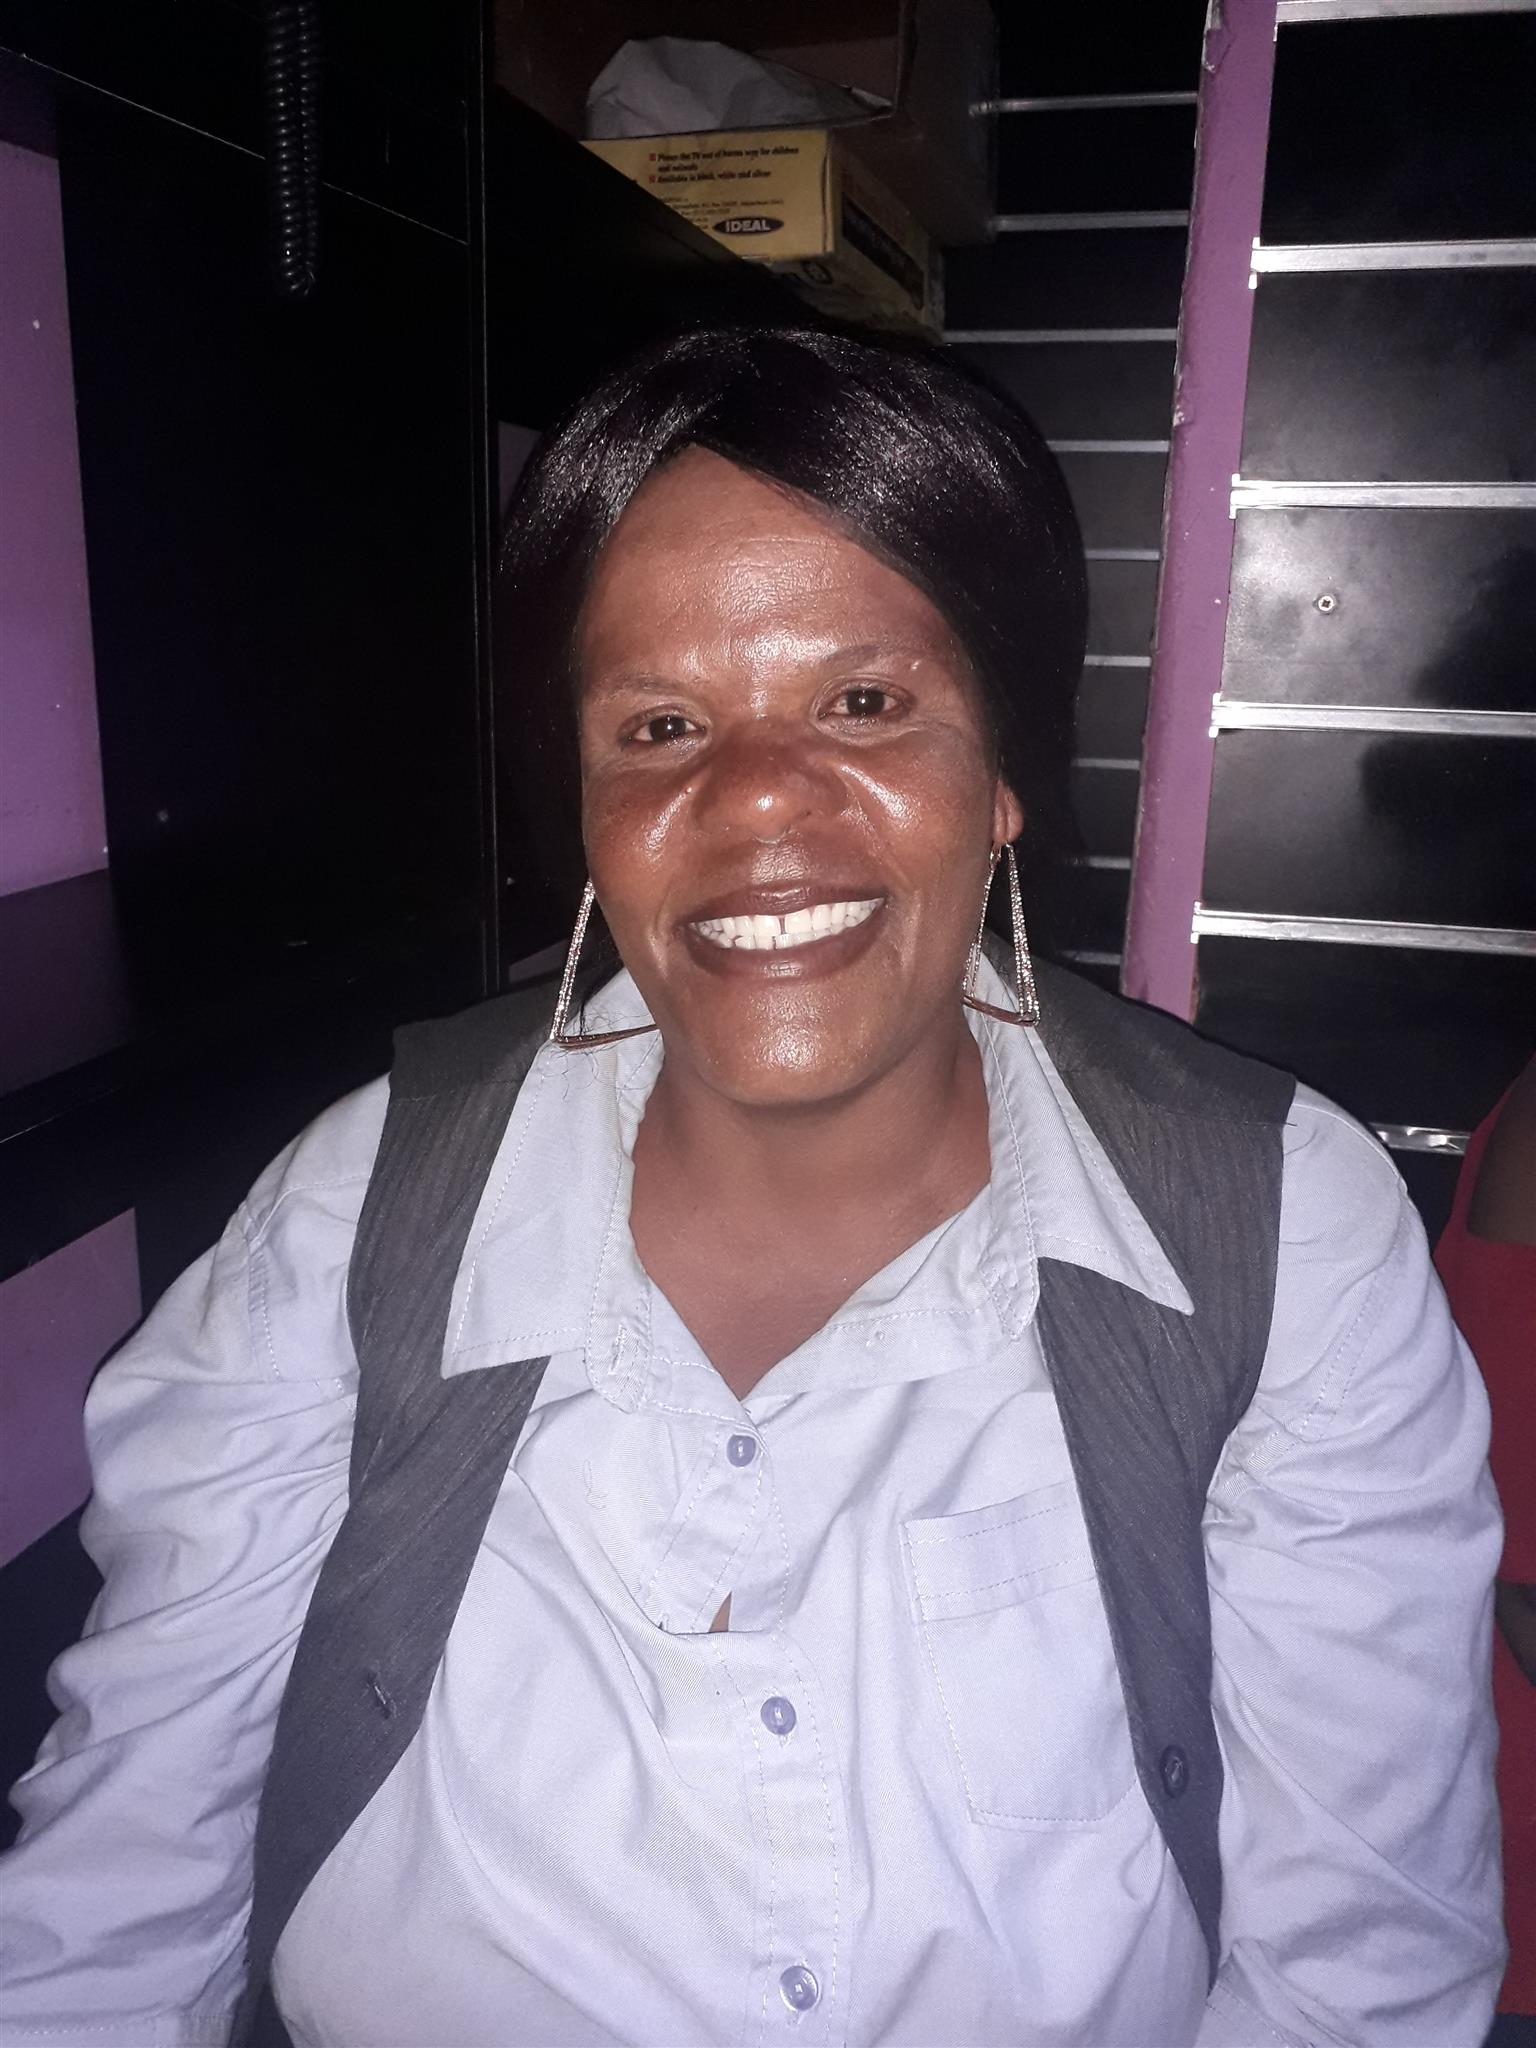 Very mature and experienced Lesotho maid and nanny looking for stay in work